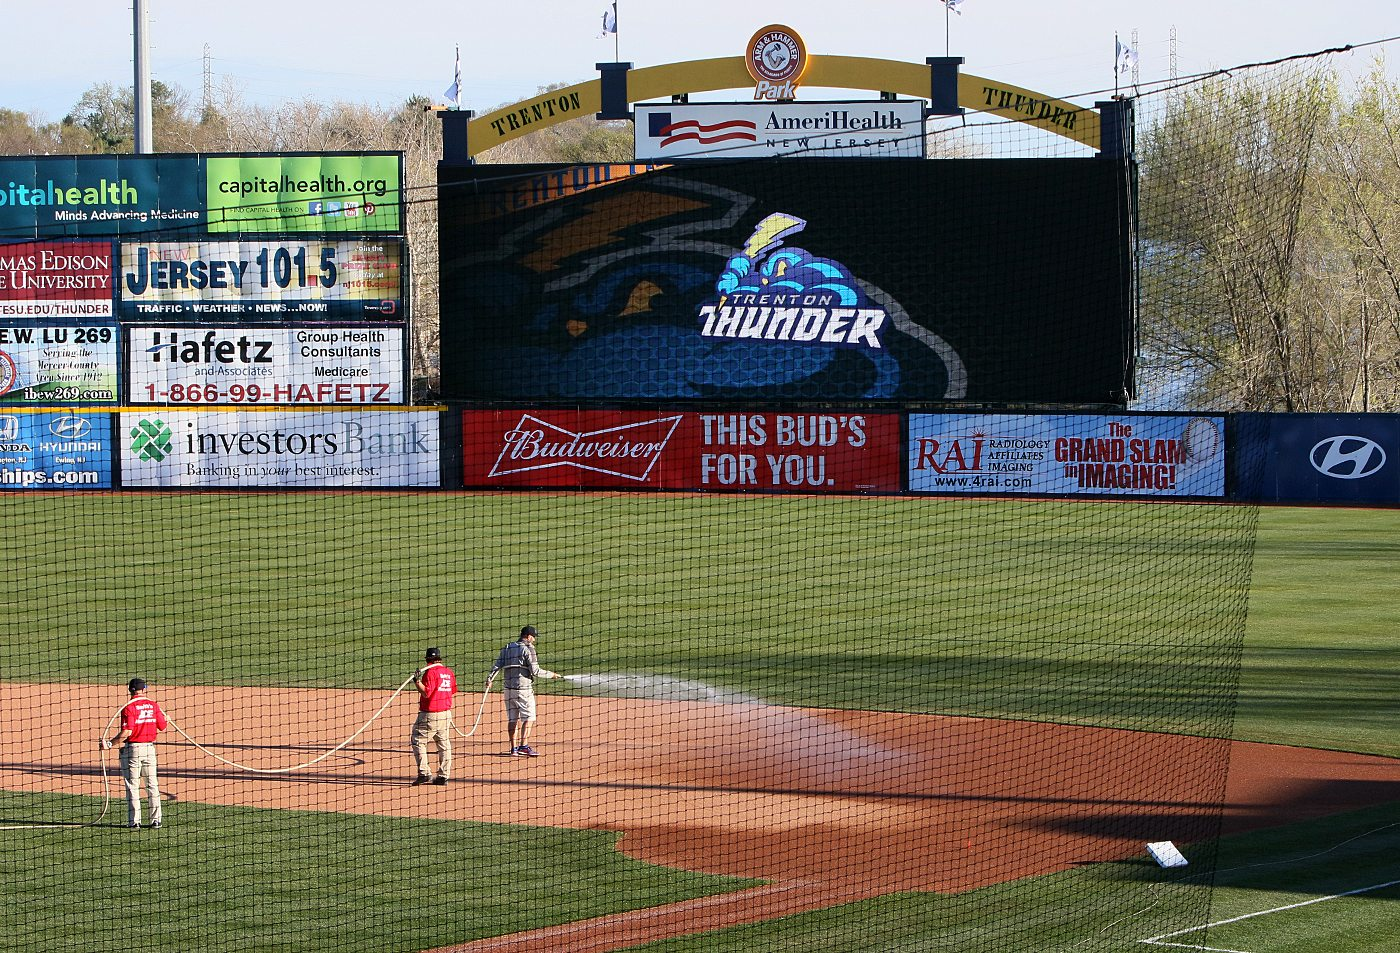 The grounds crew prepares the infield for a game between the Trenton and Portland Sea Dogs at Arm & Hammer Park in Trenton on Tuesday, April 12, 2016. Photo by Martin Griff